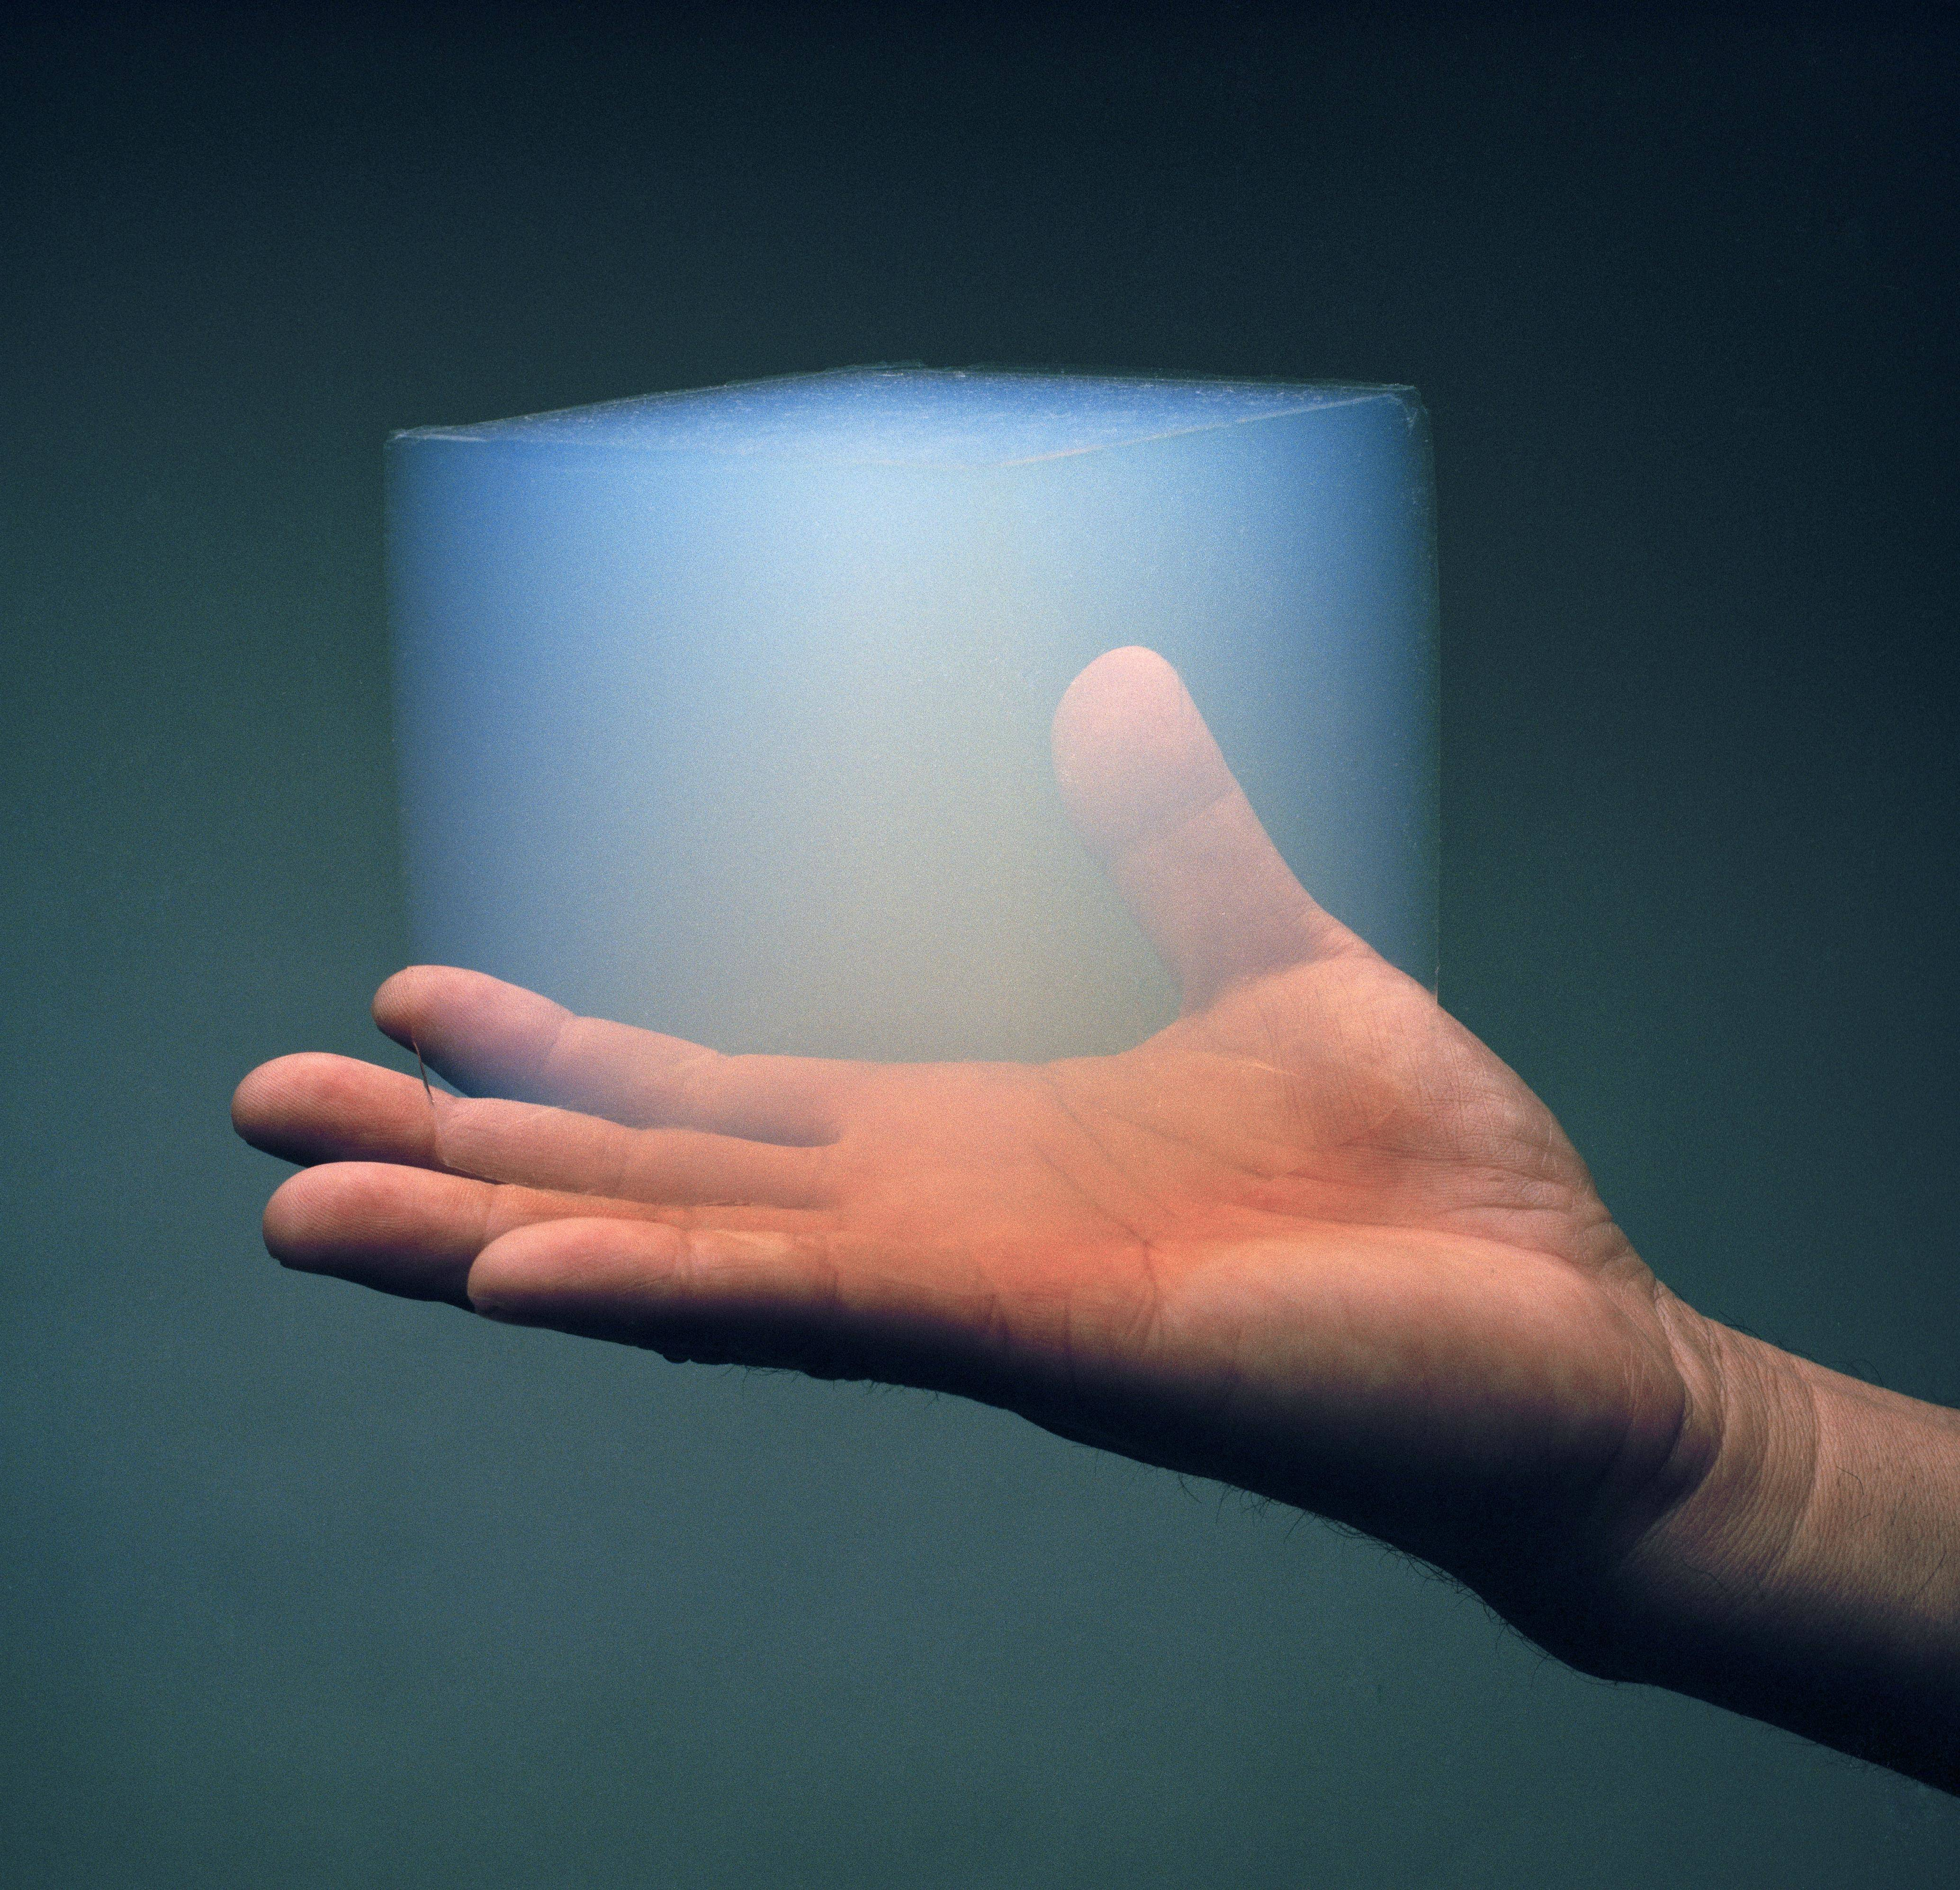 Humans may be able to live on Mars within walls of aerogel – a wonder material that can trap heat and block radiation